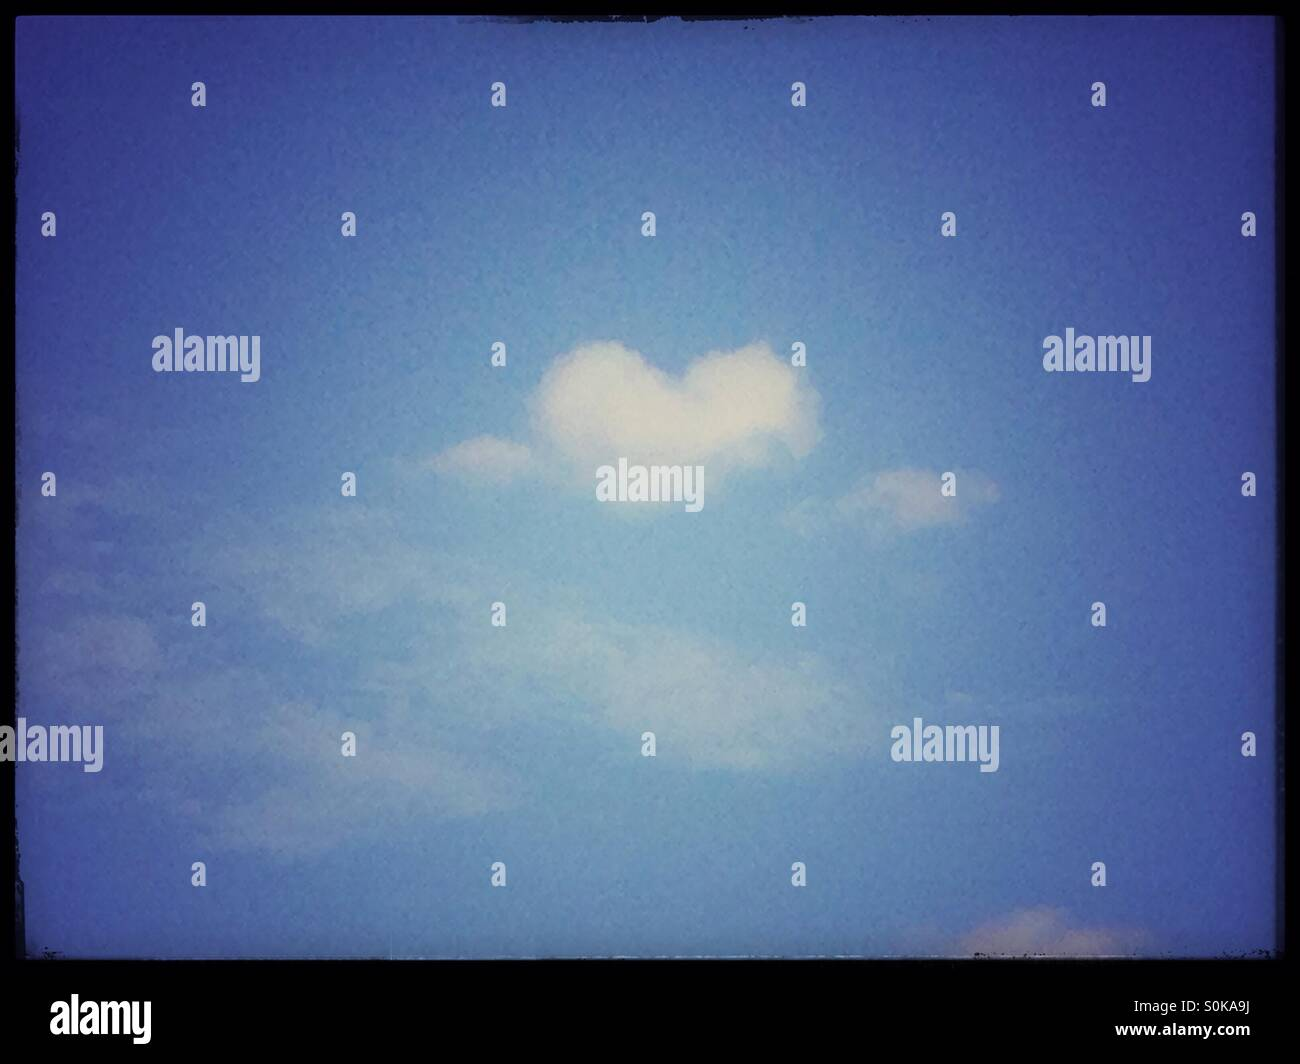 Heart in a cloud. - Stock Image